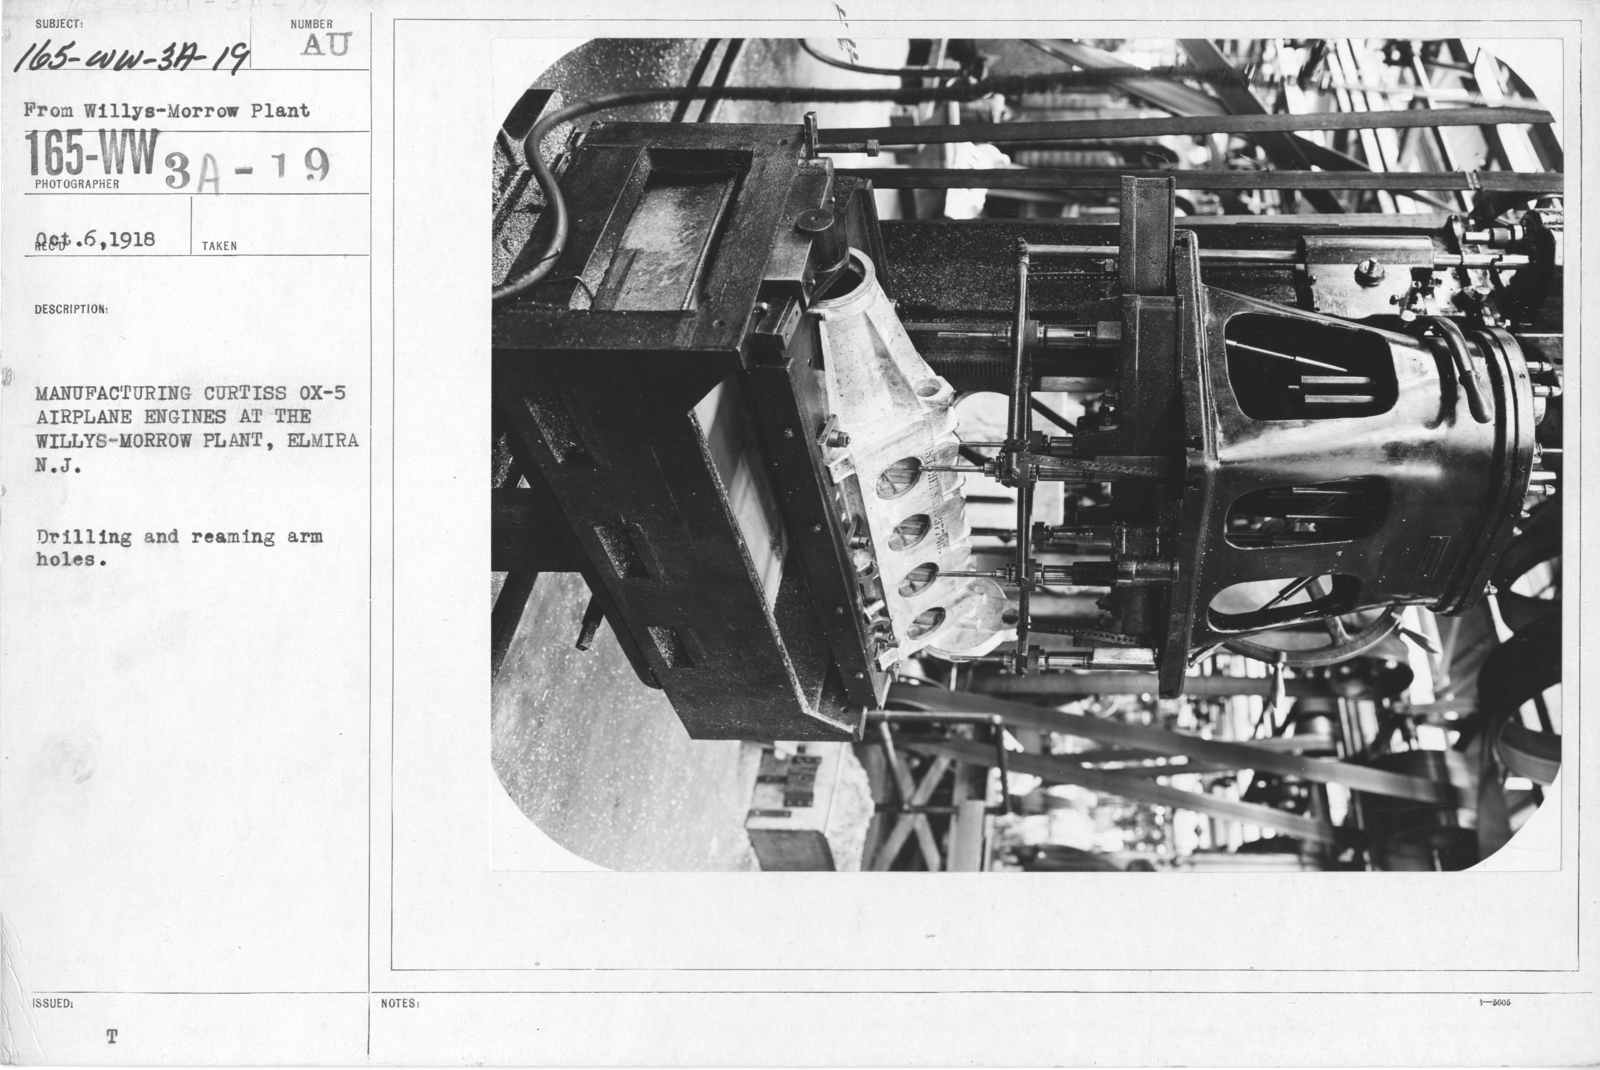 Airplanes - Engines - Manufacturing Curtiss Ox-5 airplane engines at the Willy-s Morrow Plant, Elmira, New York. Drilling and reaming arm holes